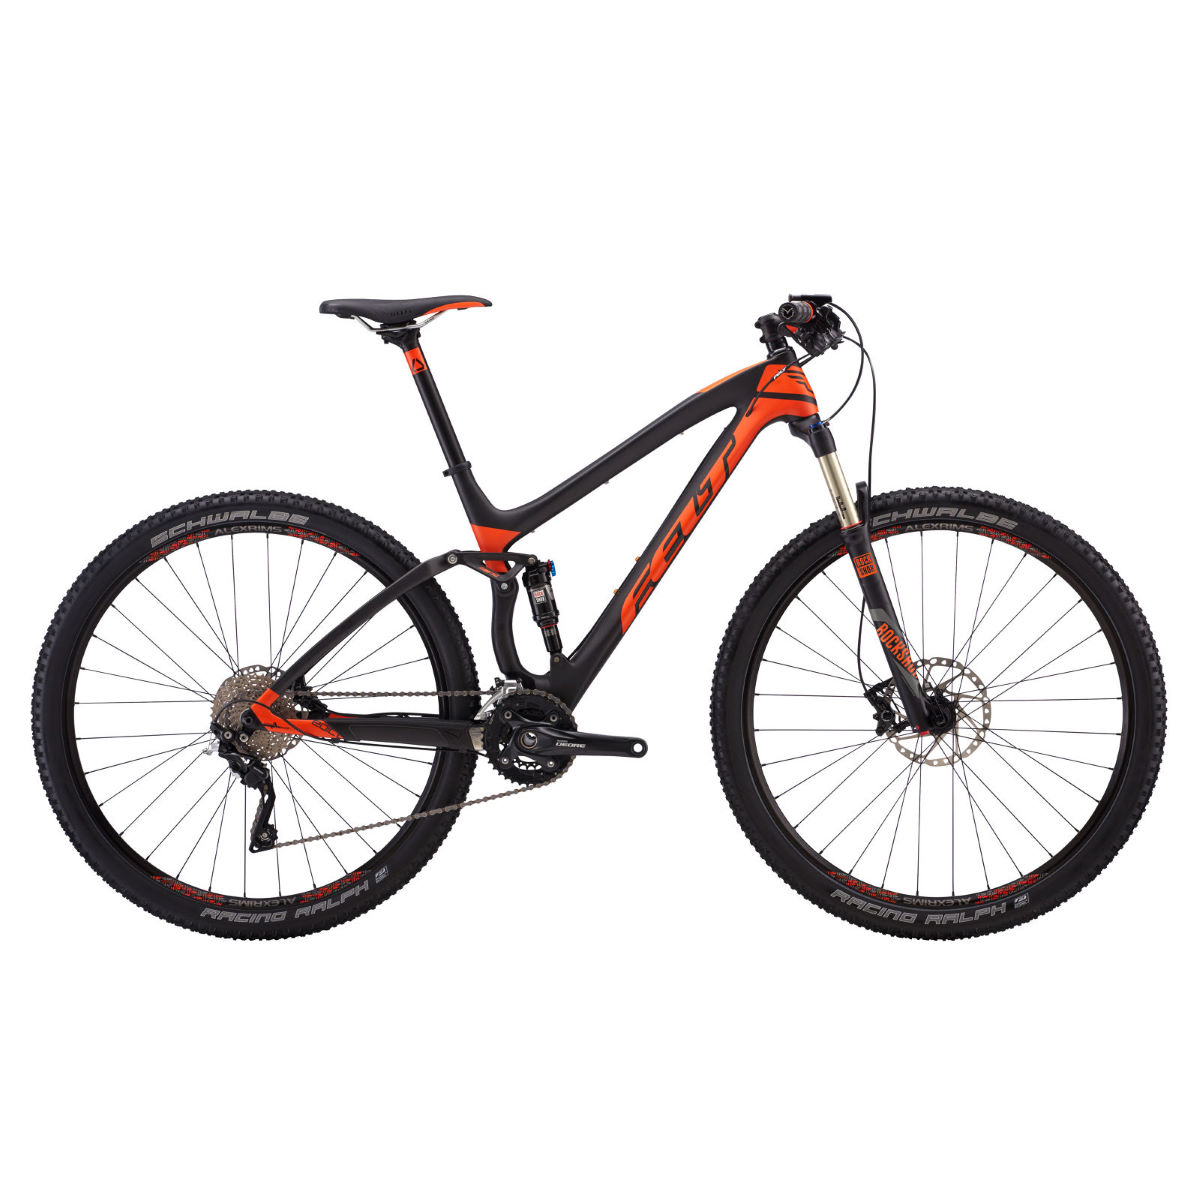 VTT Felt Edict 3 (2017) - 16'' Carbon/Orange VTT tout suspendu